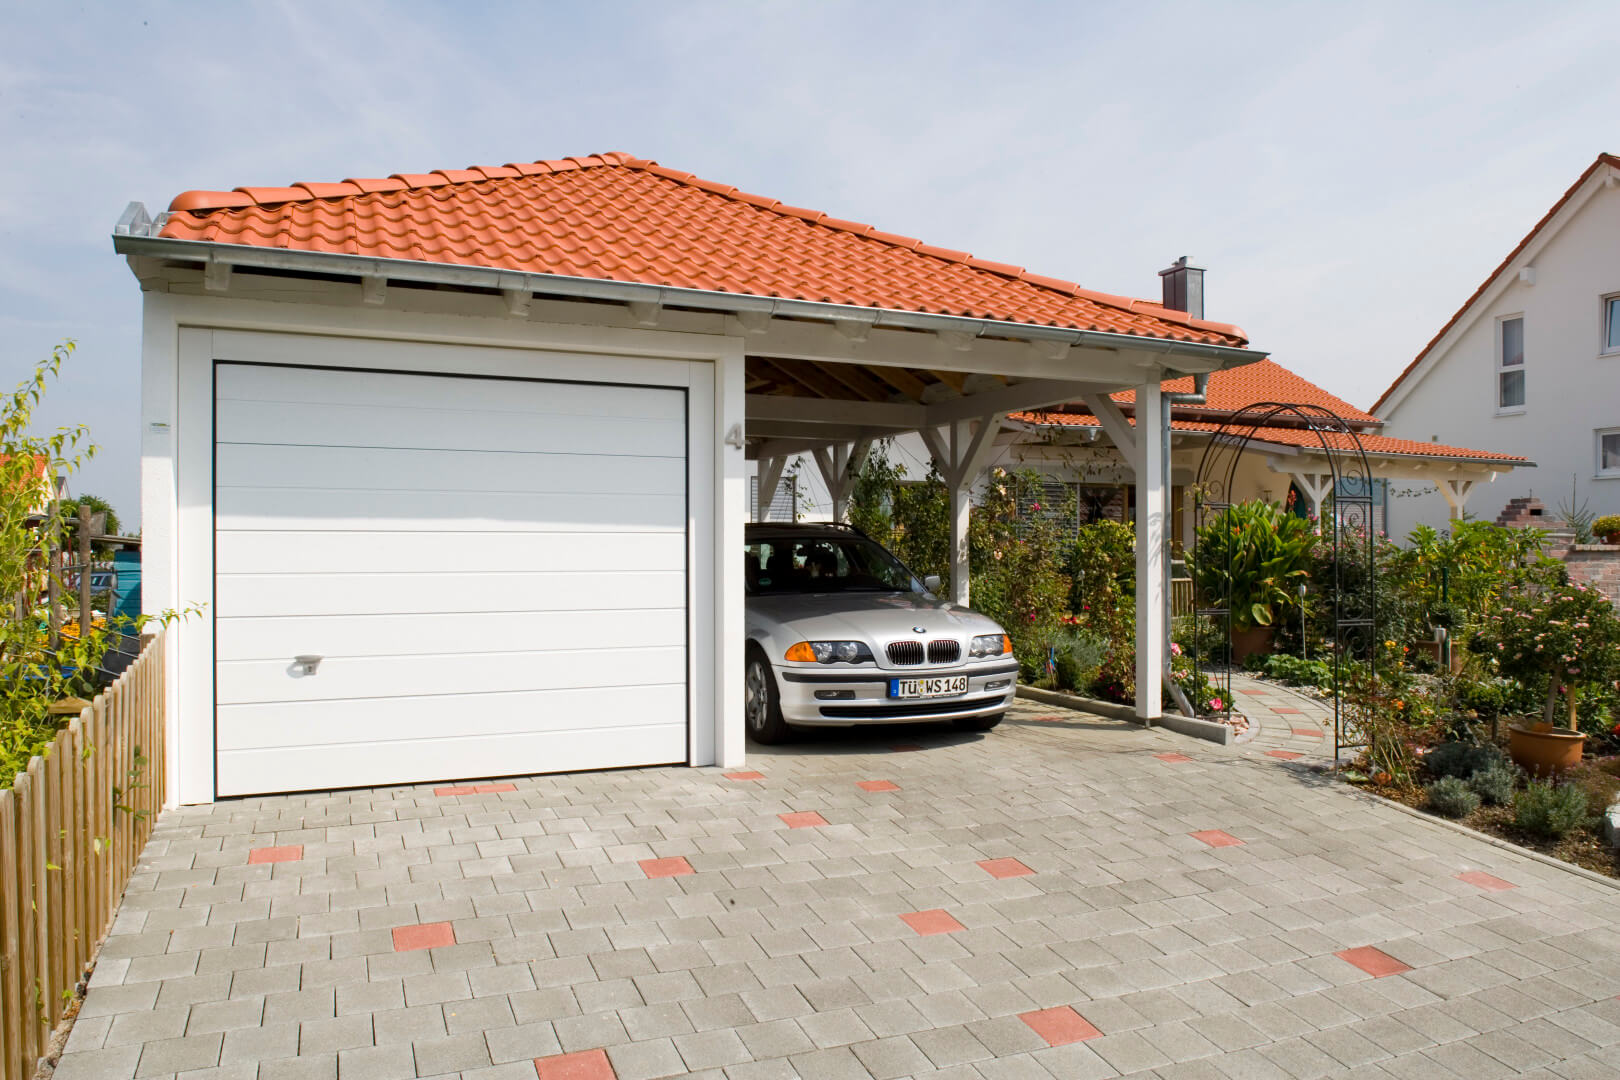 fertiggarage mit carport fertiggarage mit carport weegarden doppelgarage holzgarage mit. Black Bedroom Furniture Sets. Home Design Ideas